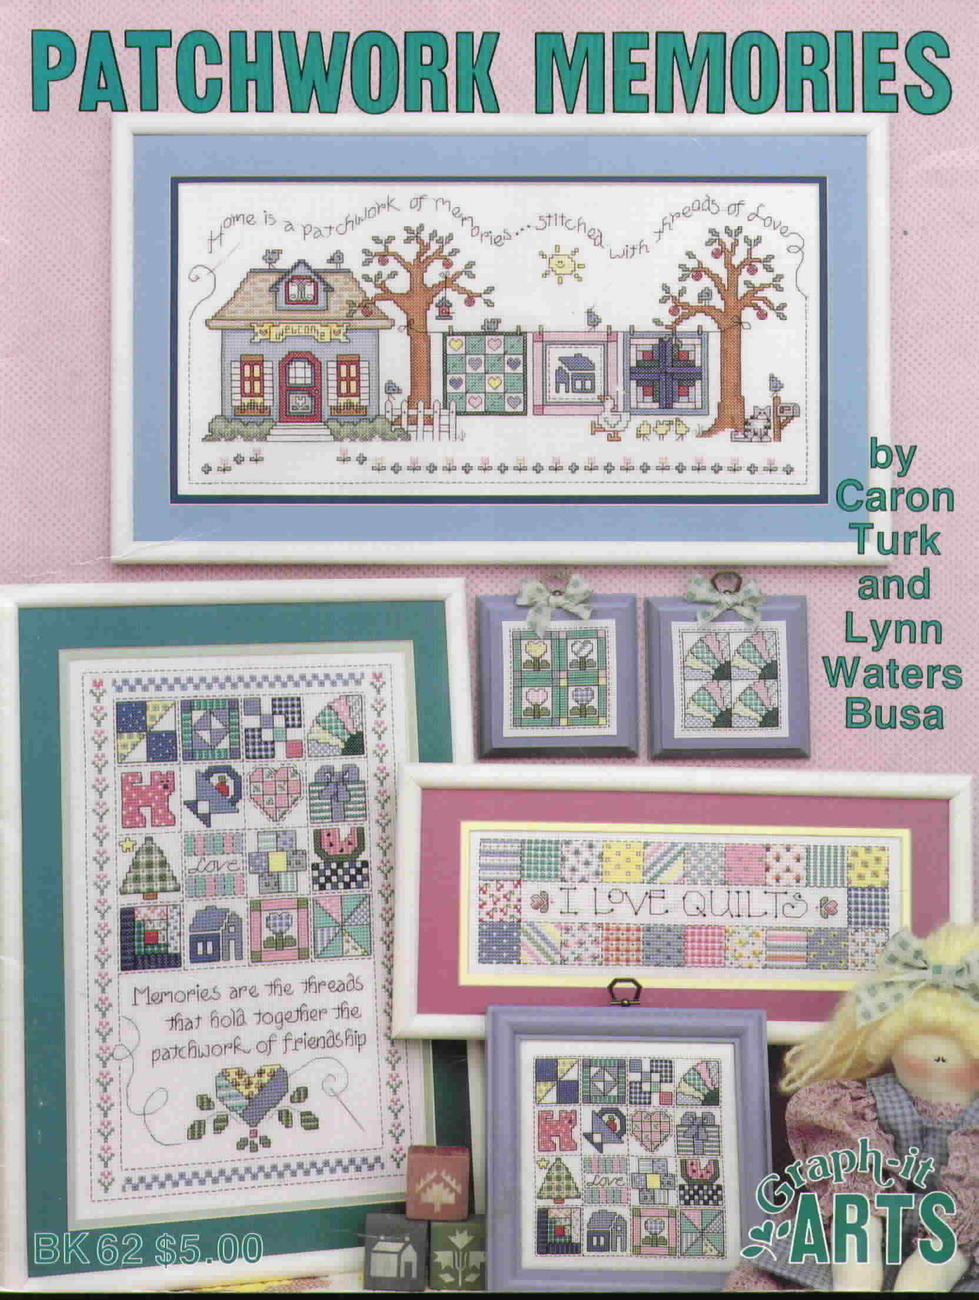 Patchwork memories book 62 by caron turk and lynn busa